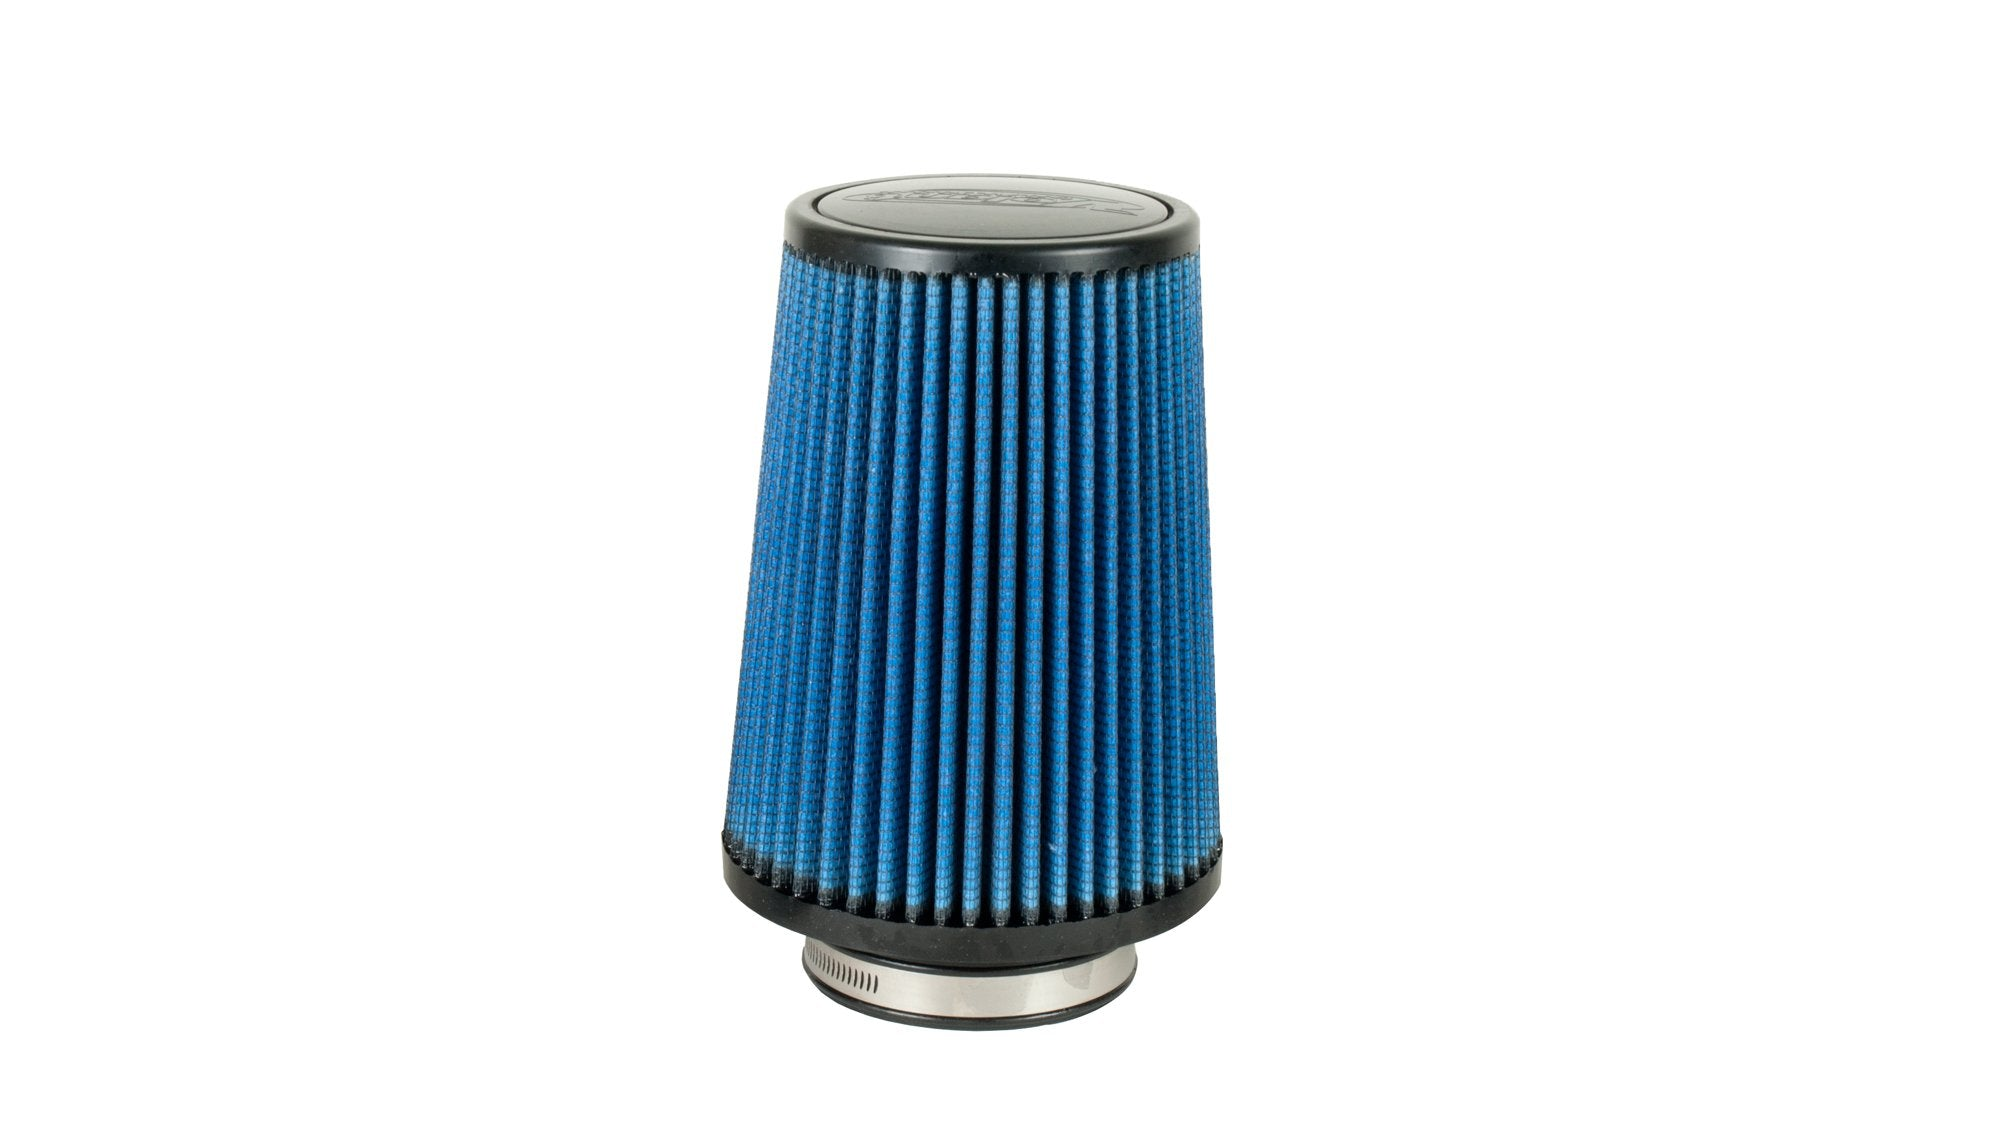 MaxFlow Oiled Air Filter (5124) Replacement Air Filter